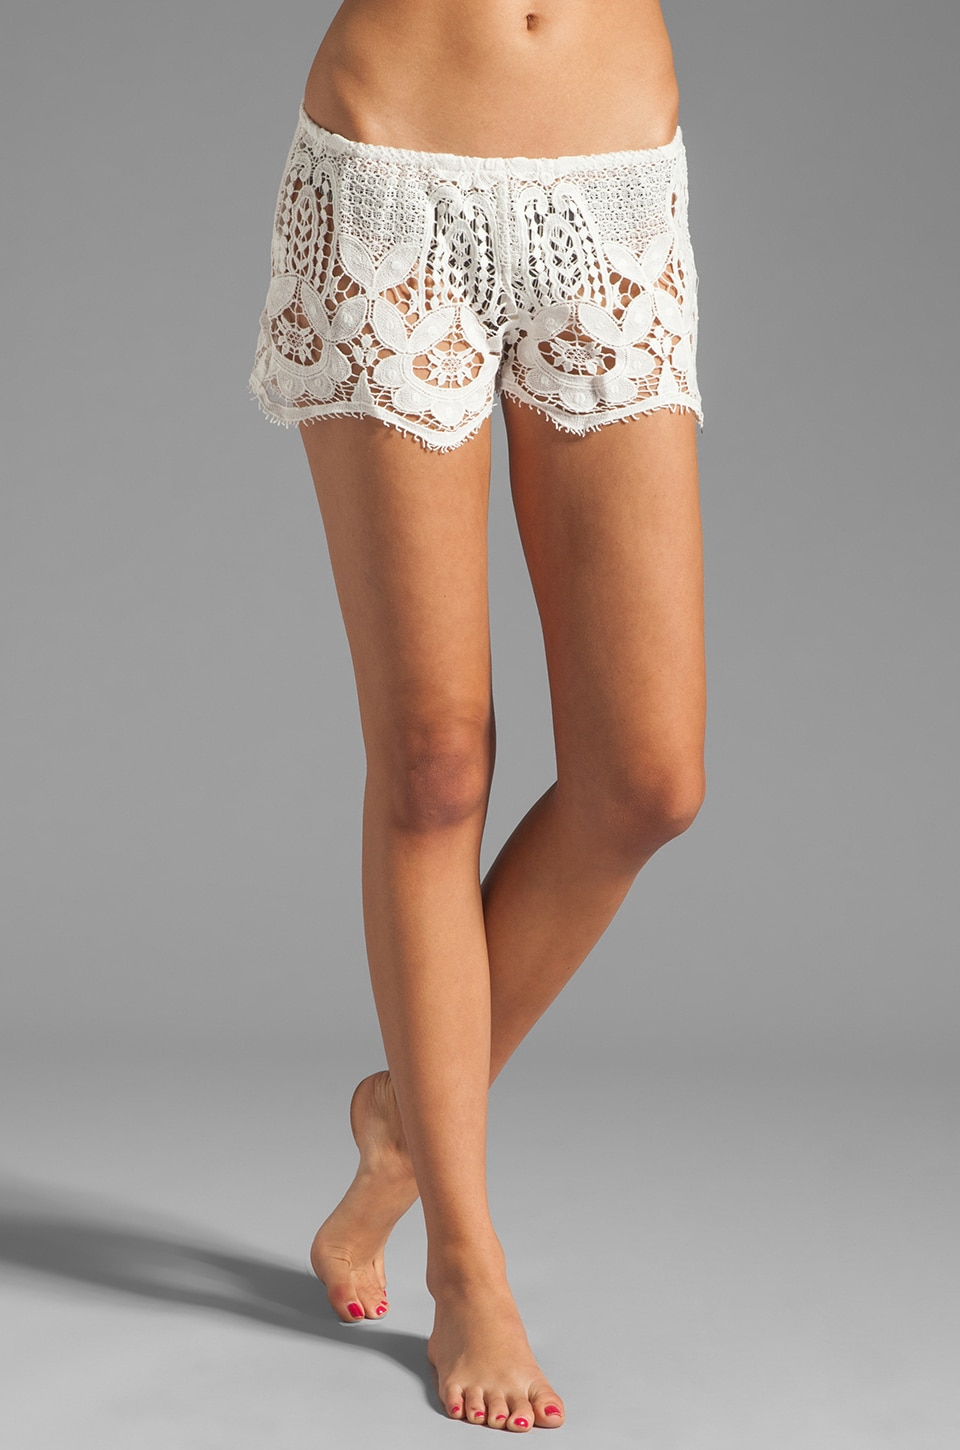 eberjey Gypsy Traveler Sam Shorts in Snow